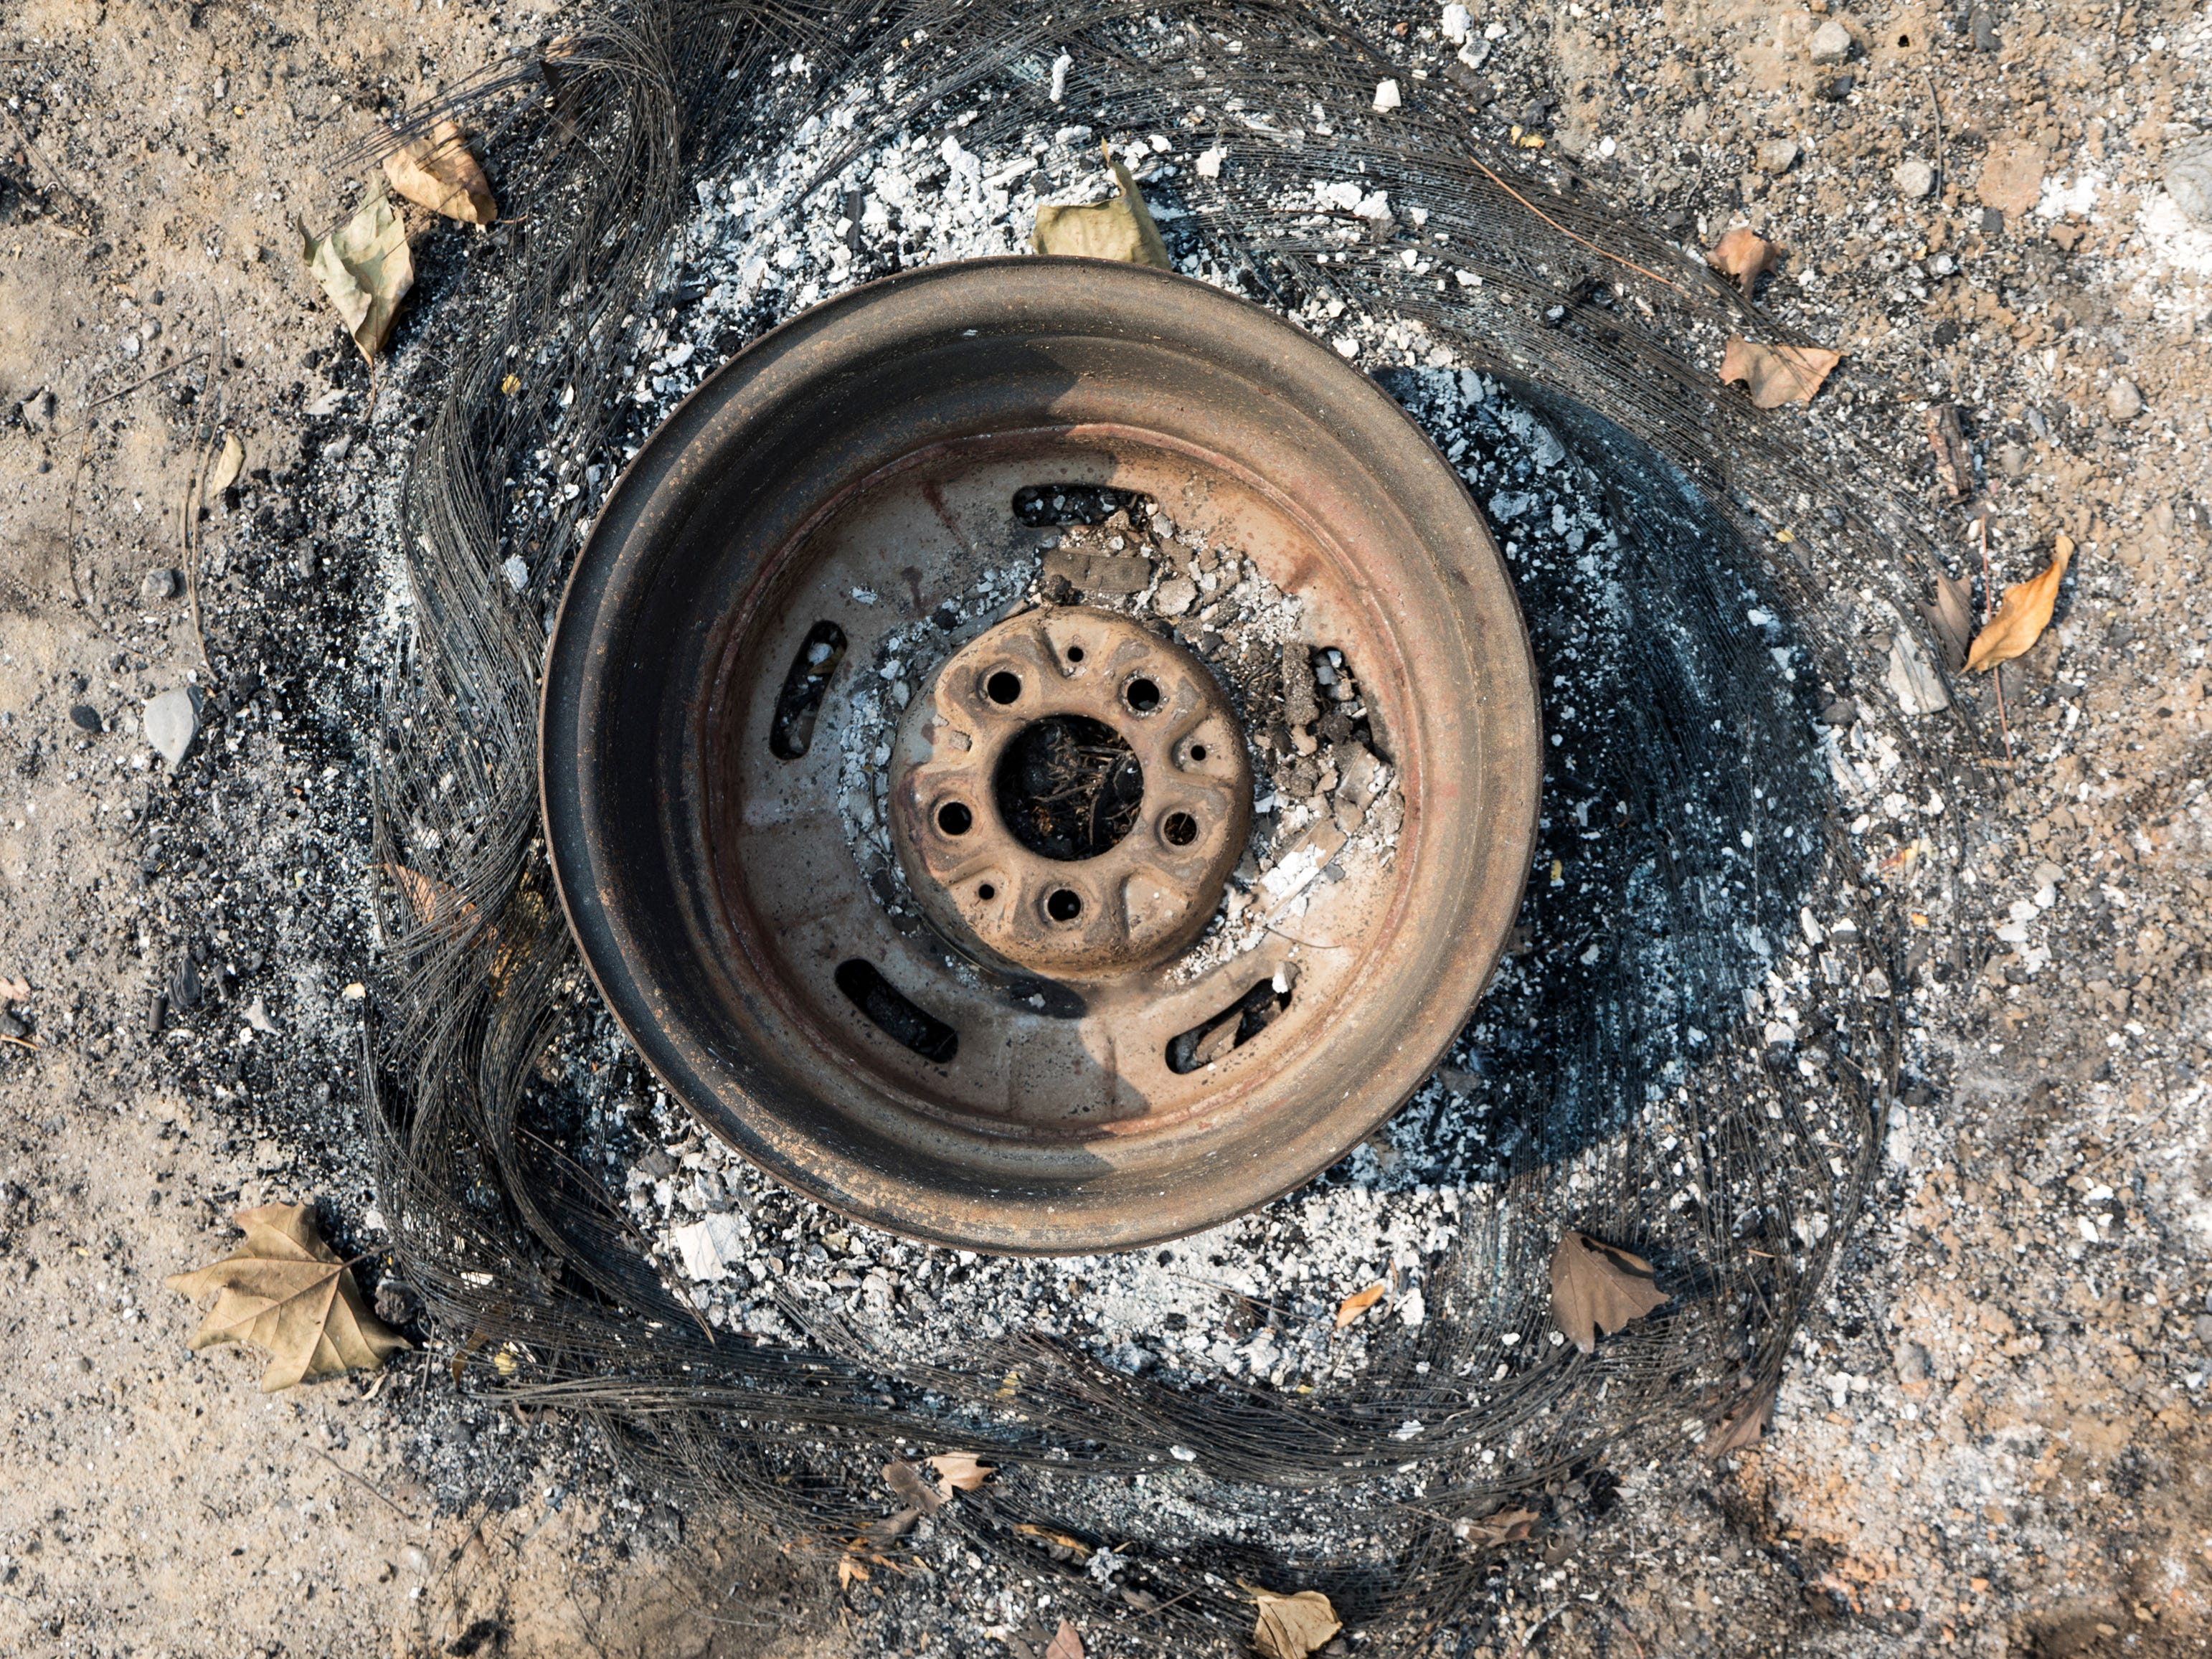 Steel cords remain of a burned tire after the intense tornado fire in Keswick, Calif., Tuesday, August 21, 2018.